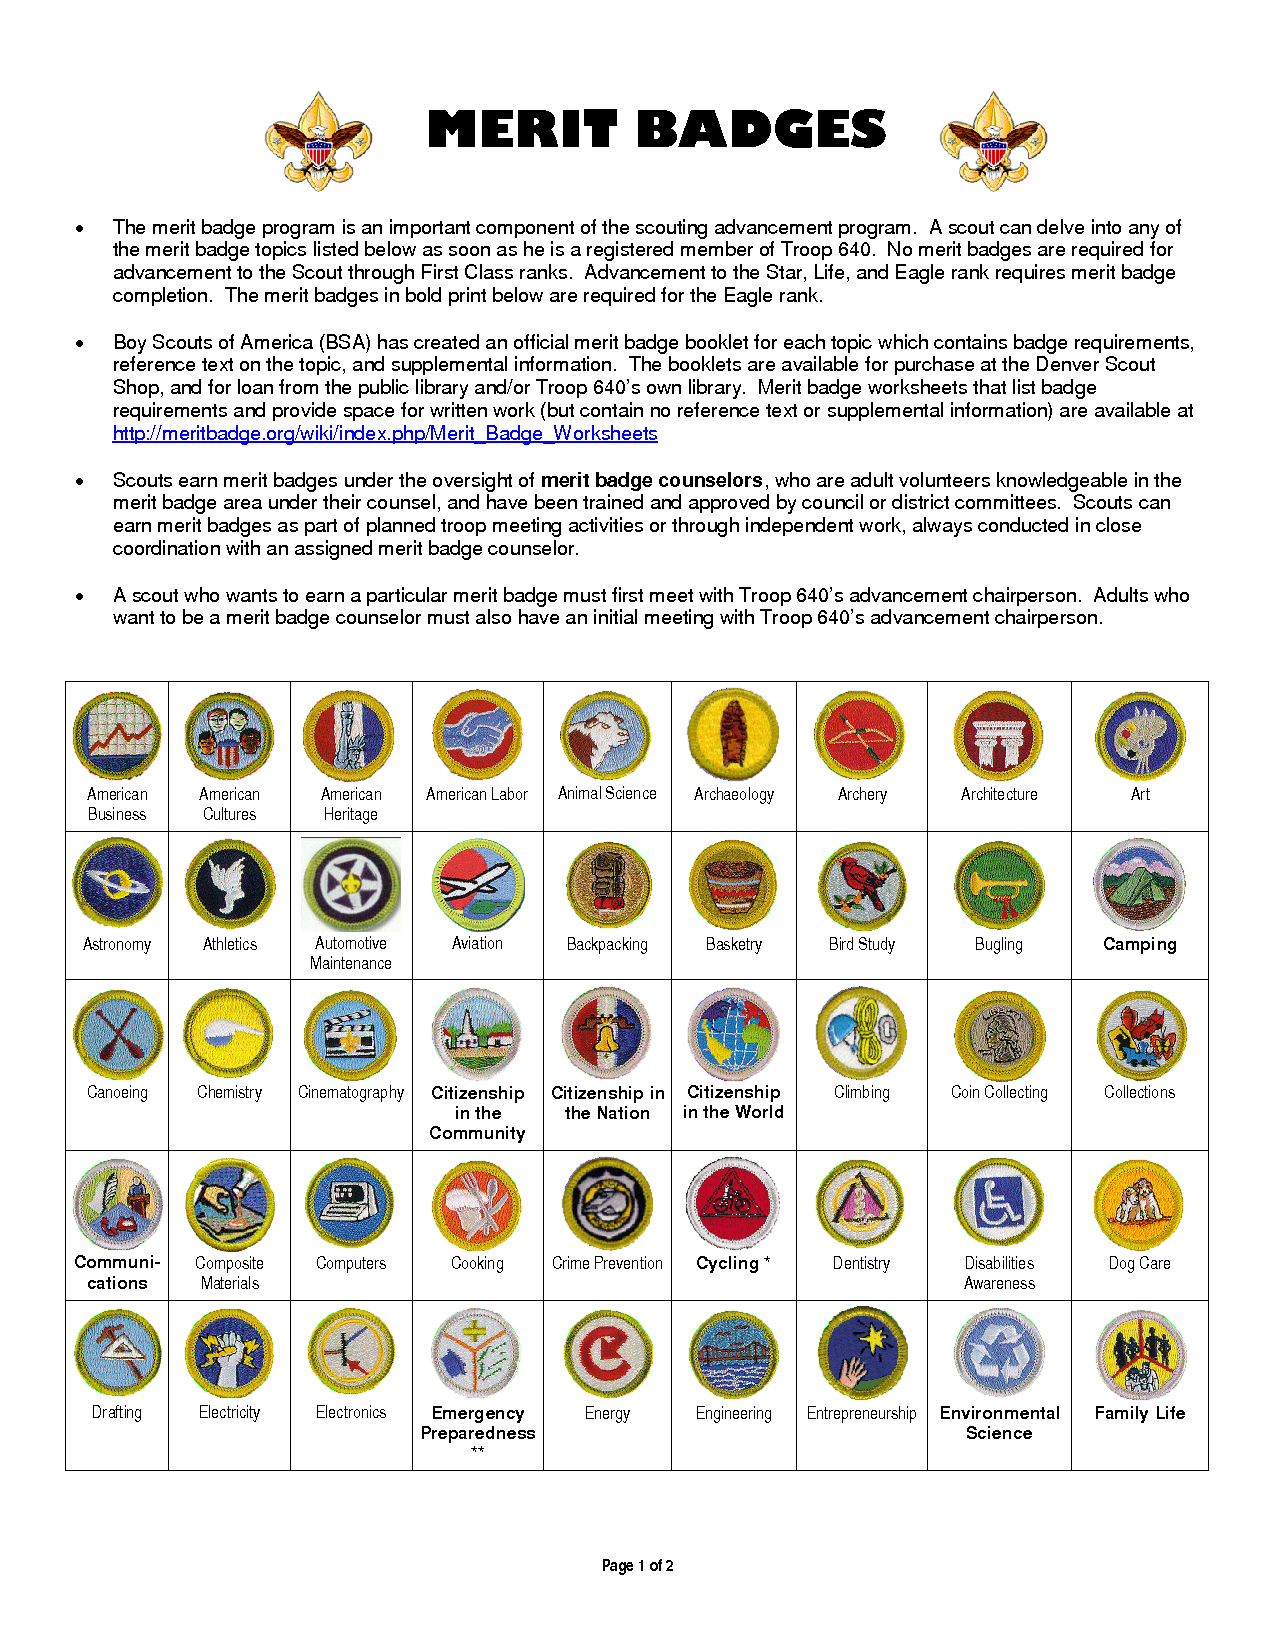 photograph relating to Printable List of Merit Badges identified as Boy Scout advantage badges Do it yourself Crafts Boy scouts benefit